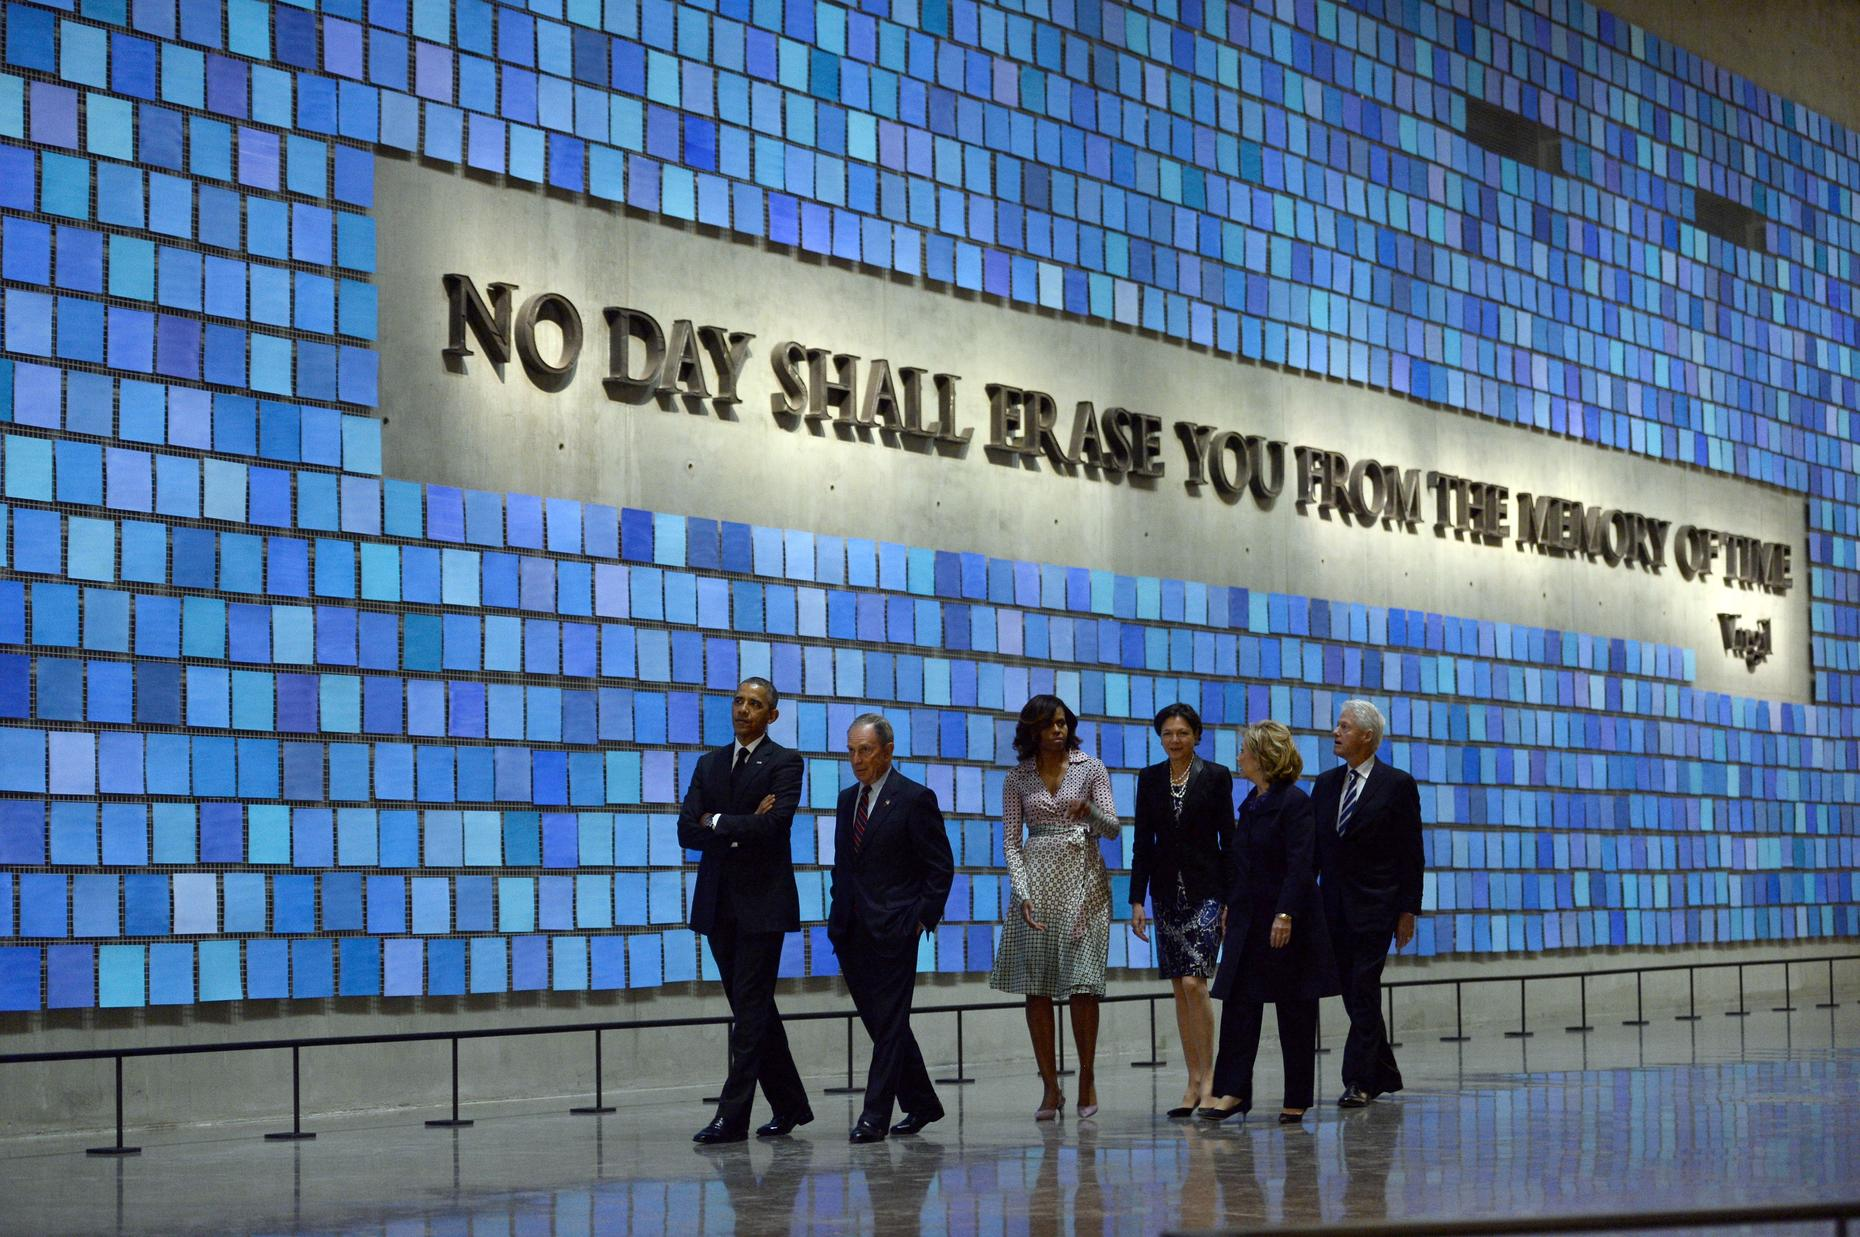 President Barack Obama, Michael Bloomberg, Michelle Obama, Hillary Clinton, and Bill Clinton tour the National September 11 Memorial & Museum. (Jewel Samad/AFP)